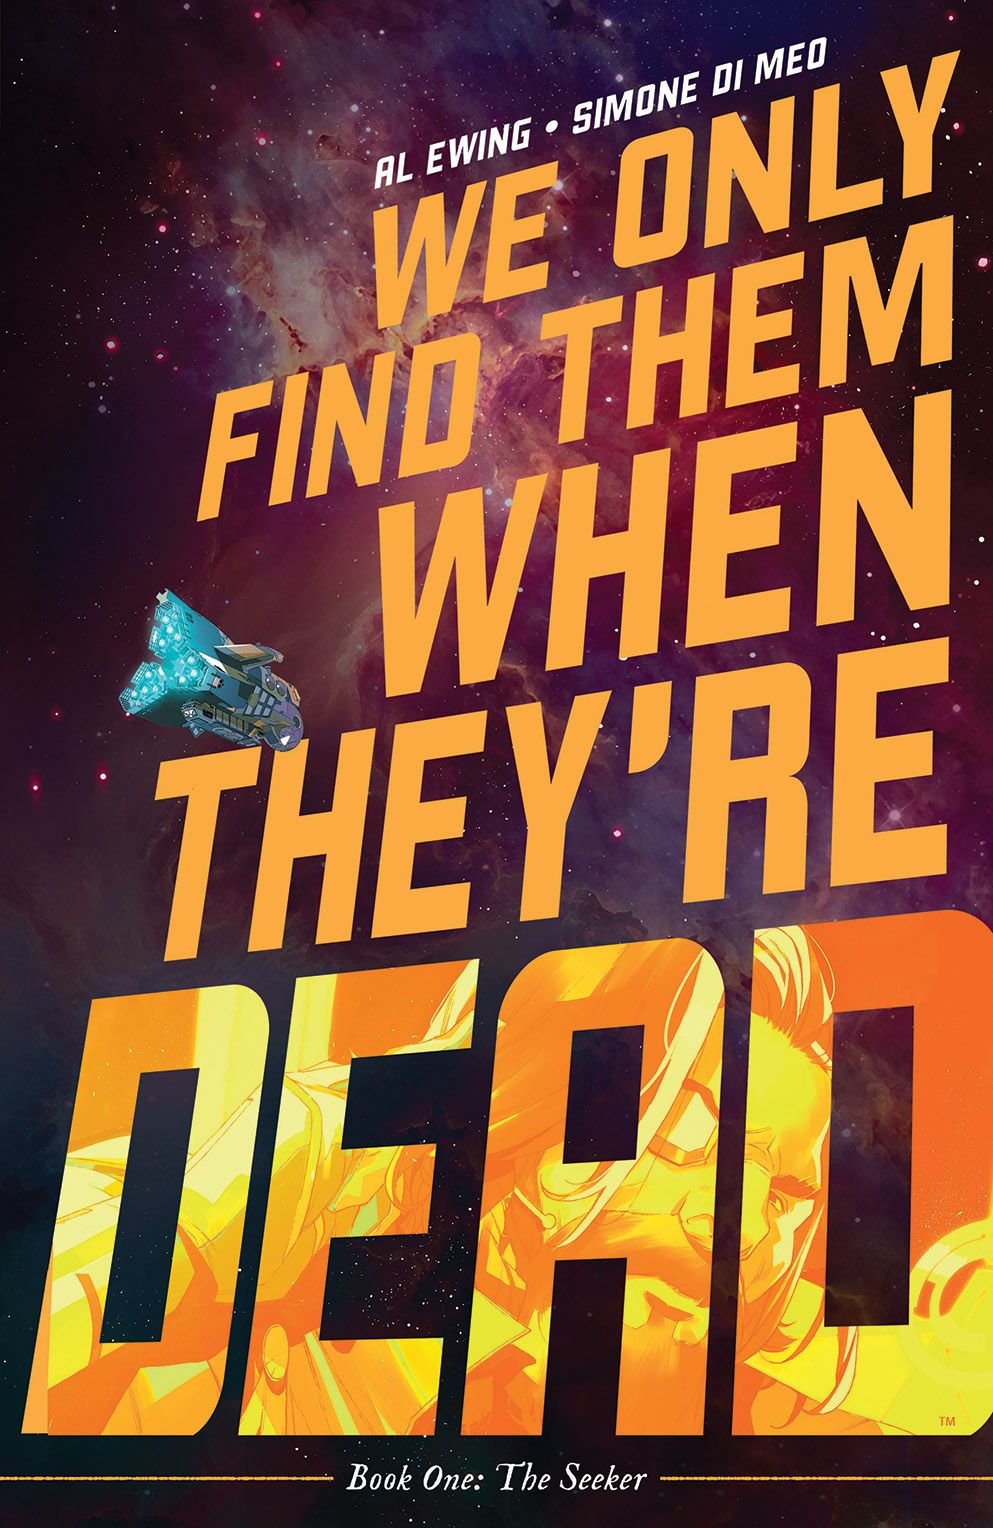 REVIEW: We Only Find Them When They're Dead Vol. 1 Is a Staggeringly Brilliant